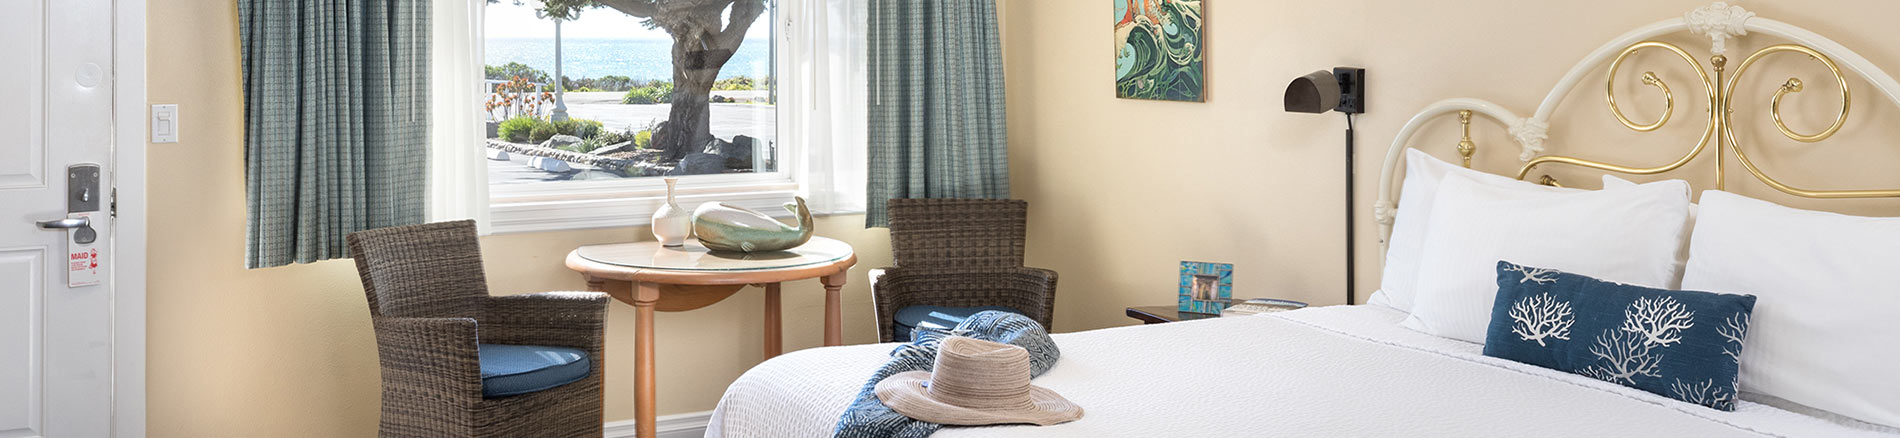 Castle Inn, Cambria CA Hotel, Best Hotel for Families at Moonstone ...